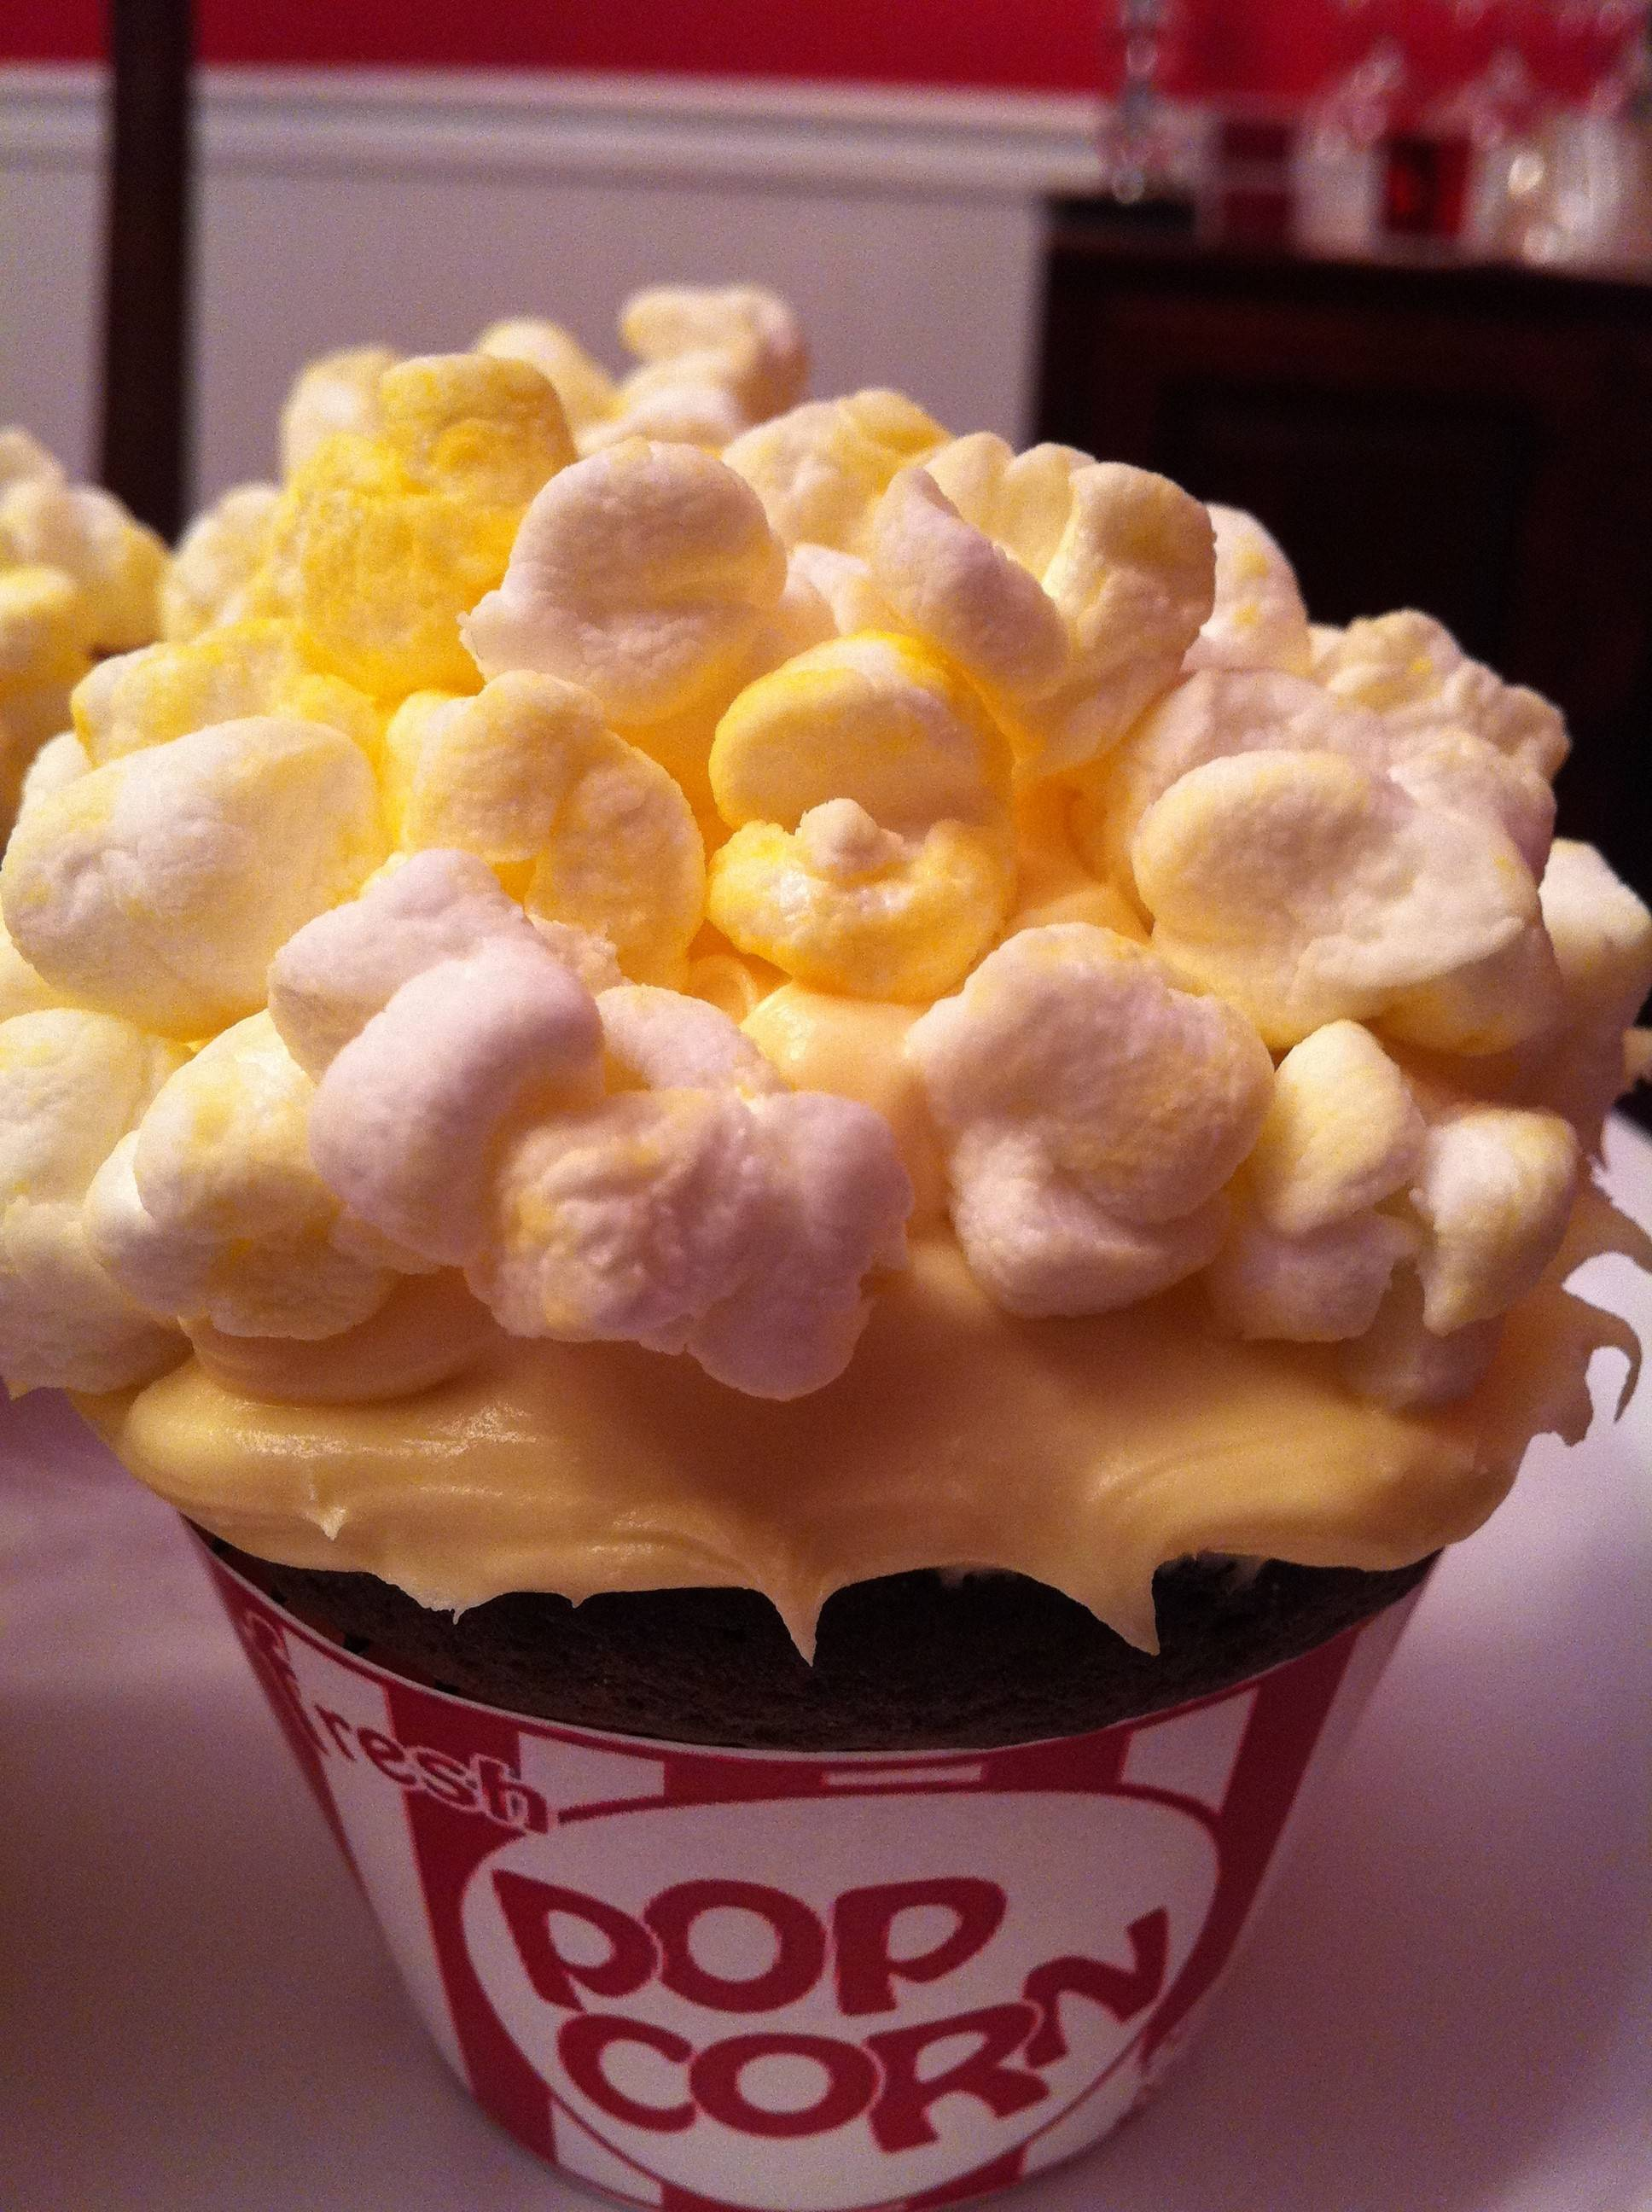 Popcorn cupcakes by Terri Edmunds of Naperville.